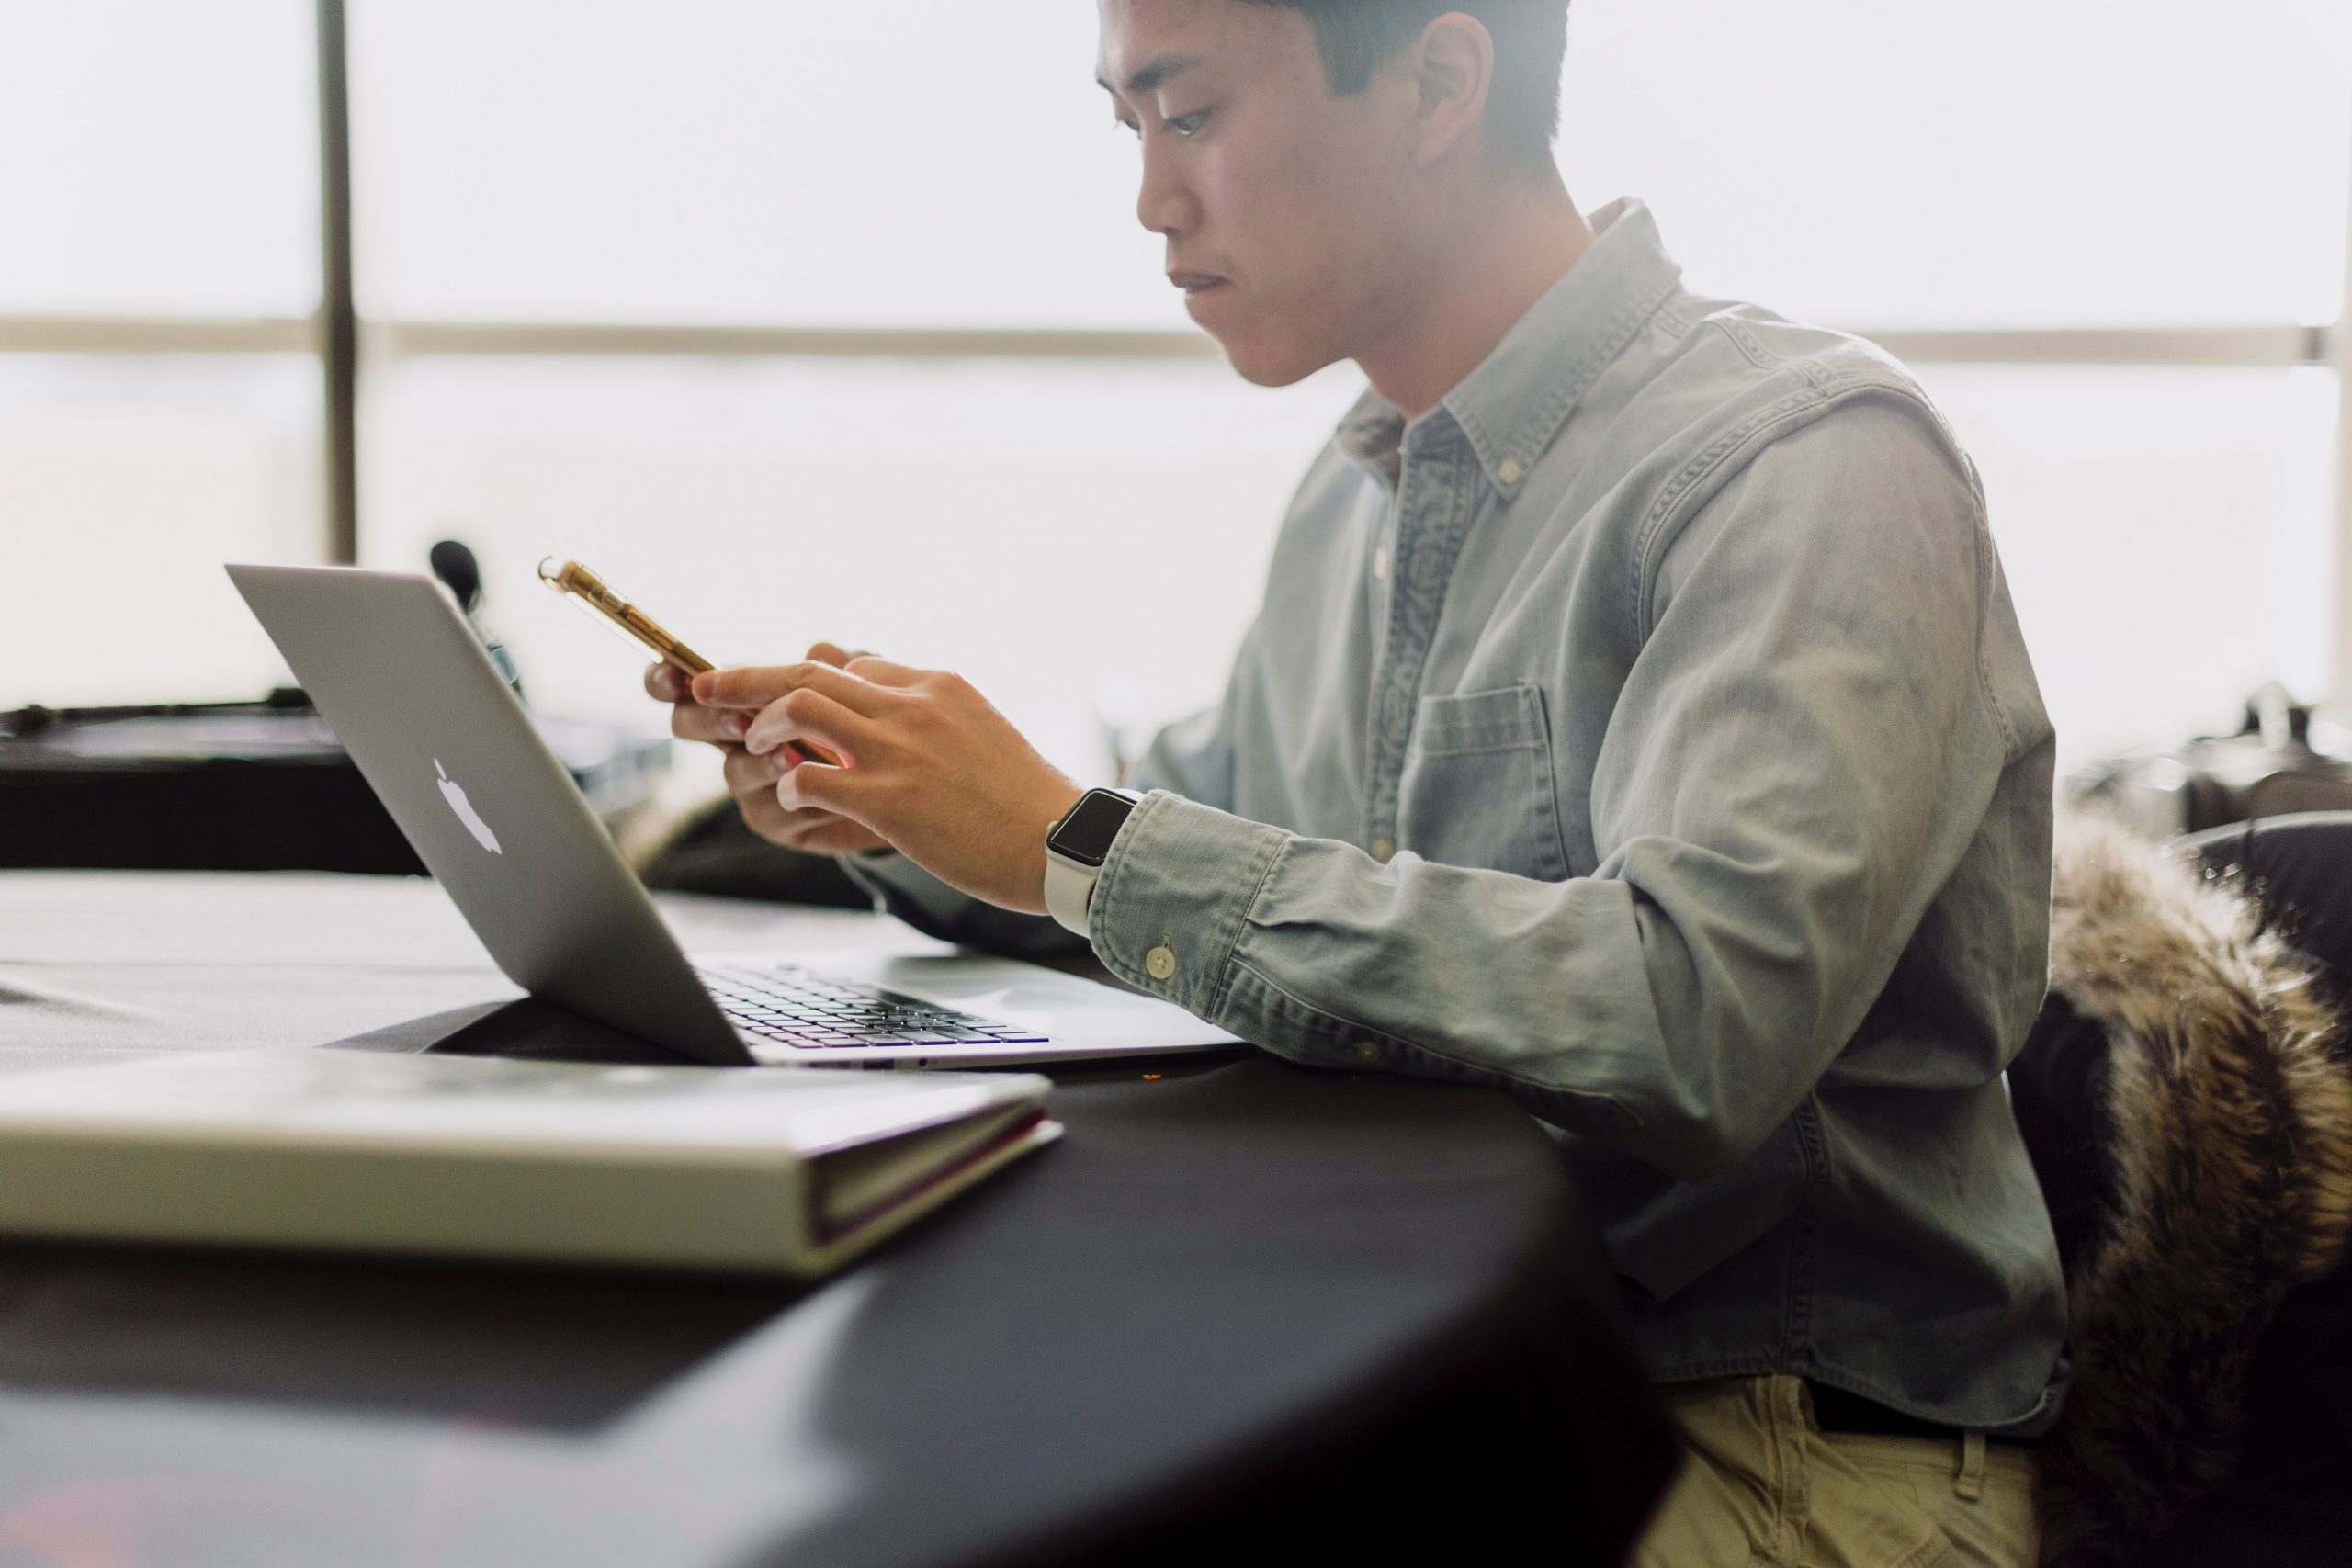 man looking concerned while reading on mobile phone and laptop